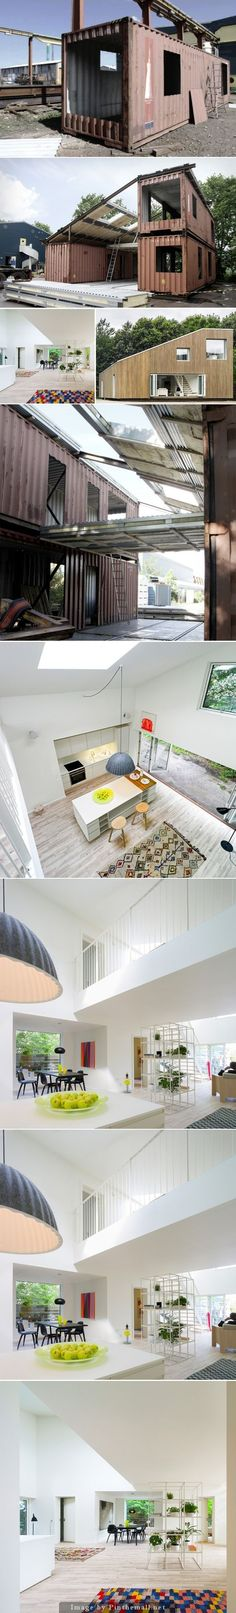 48 best Tiny Homes images on Pinterest | Container houses, Small ...